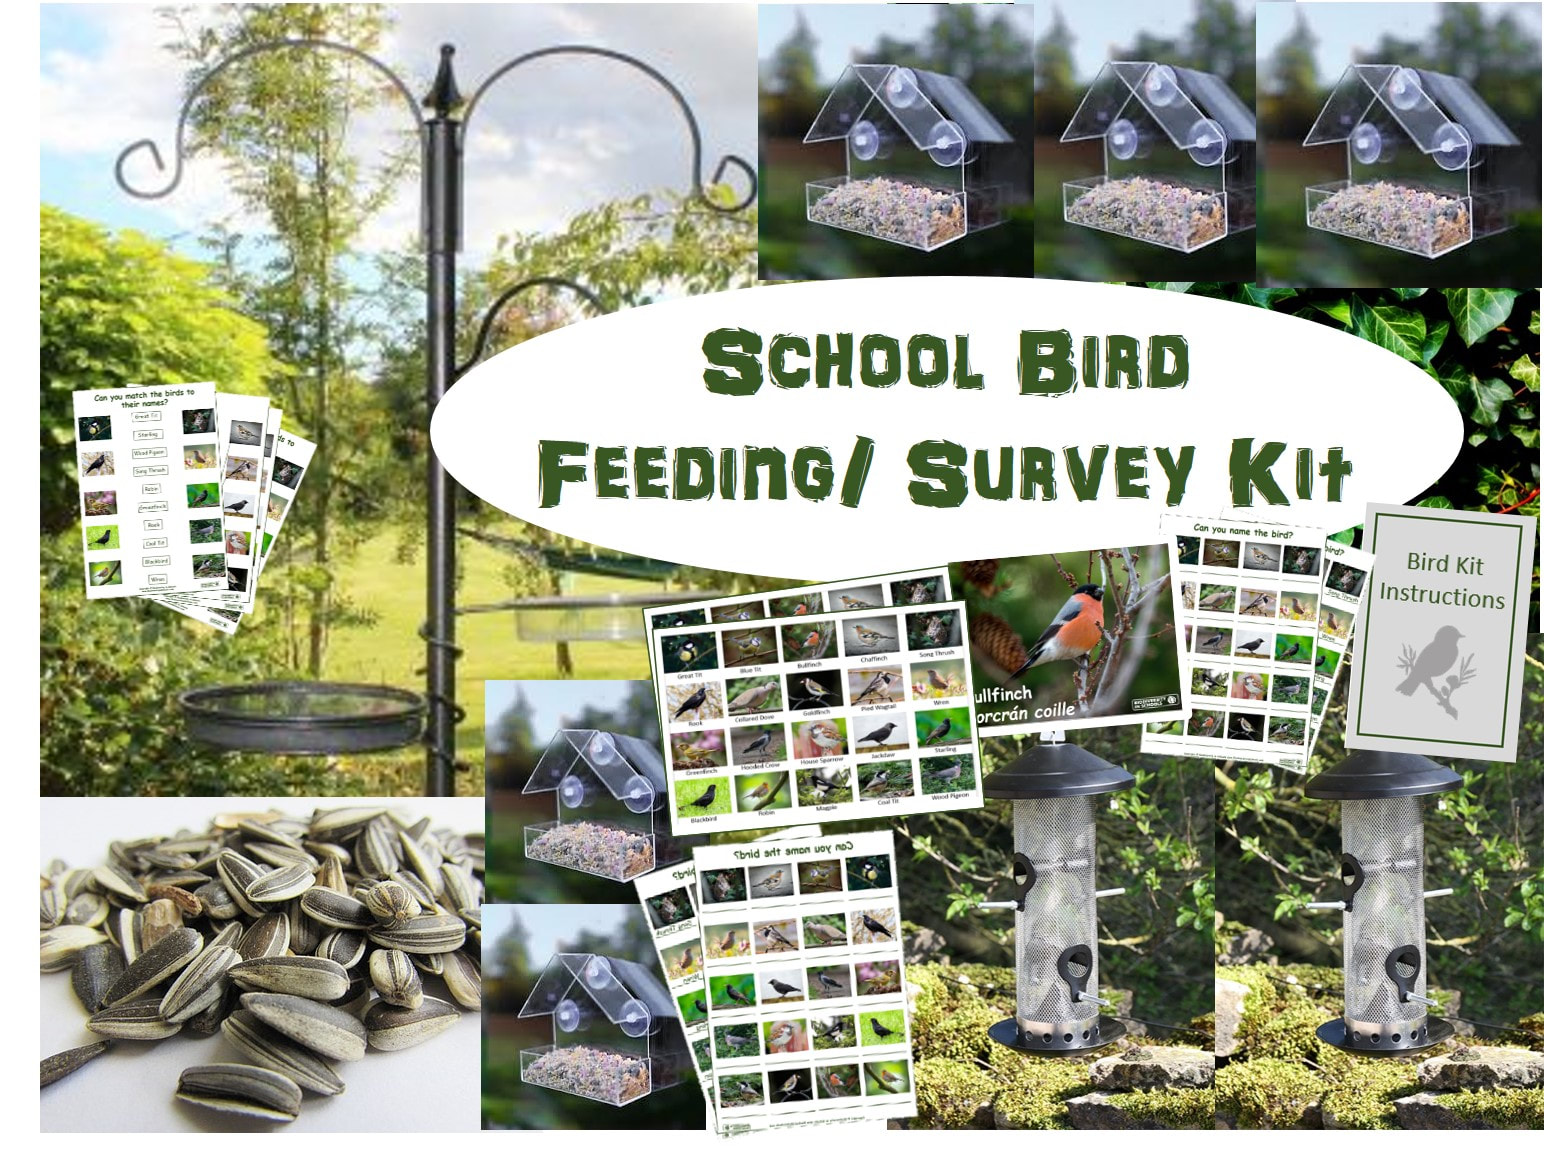 School Bird Feeding Survey Kit